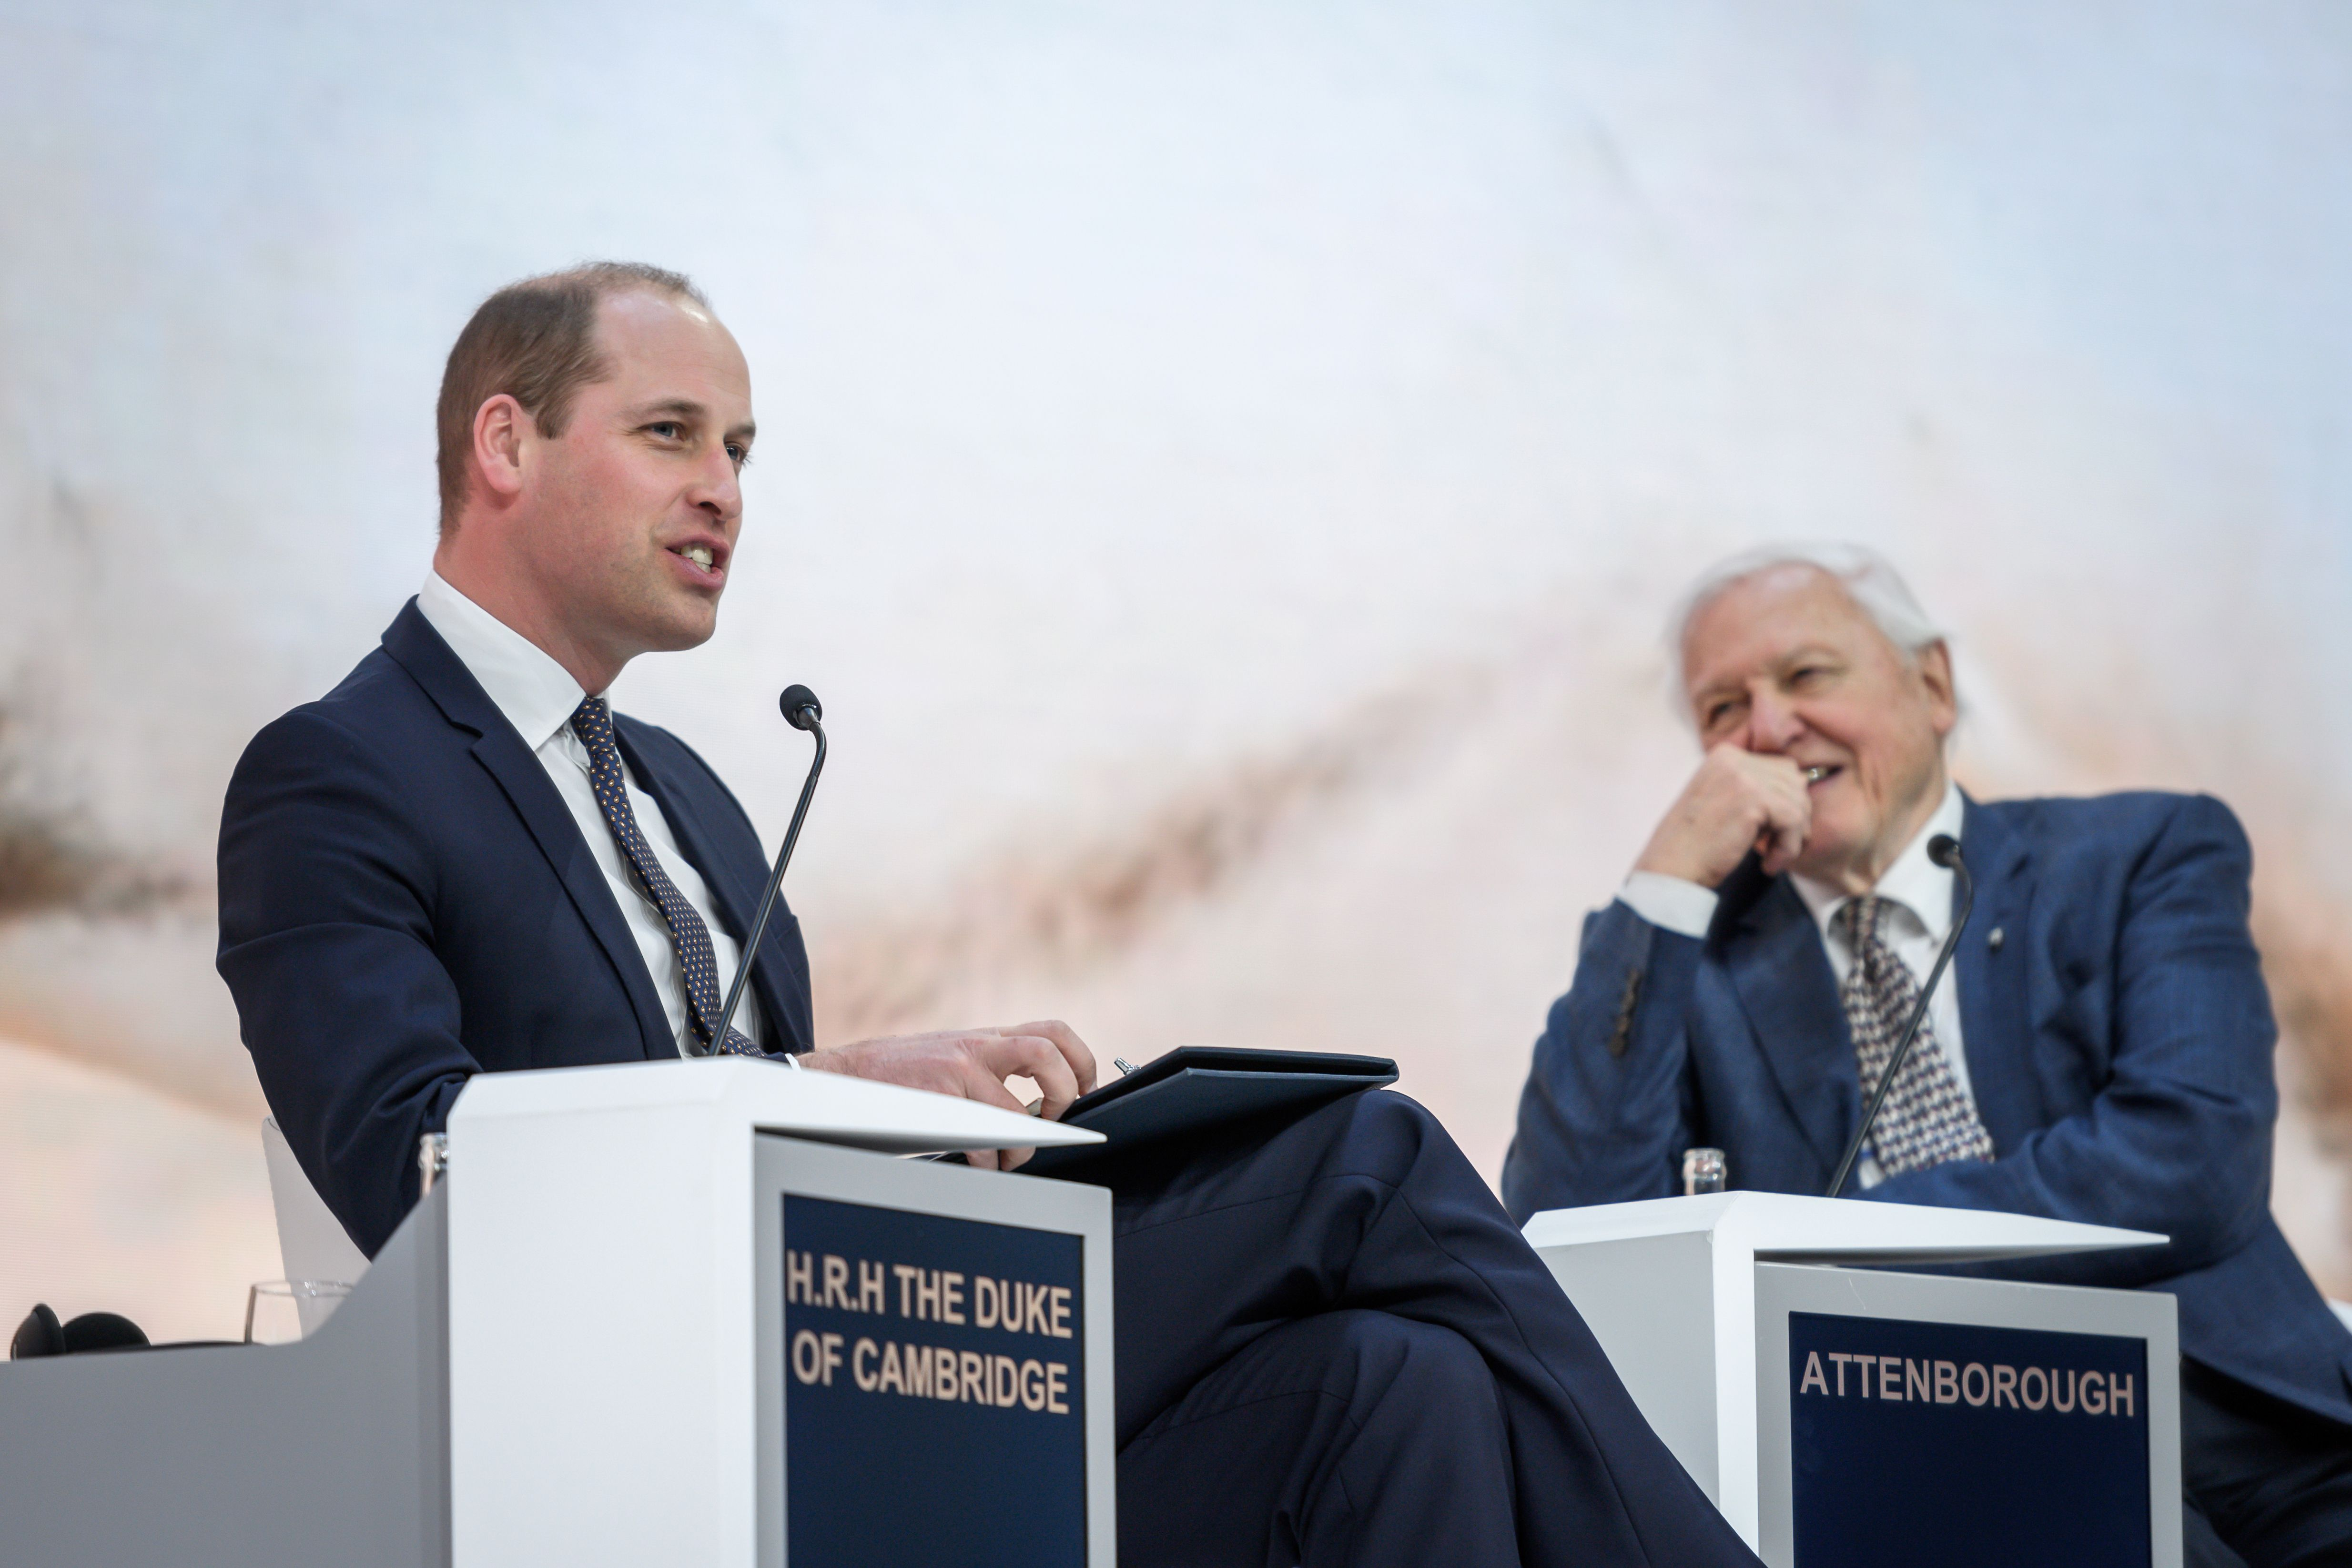 Watch Prince William And David Attenborough Talk At The World Economic Forum In Davos